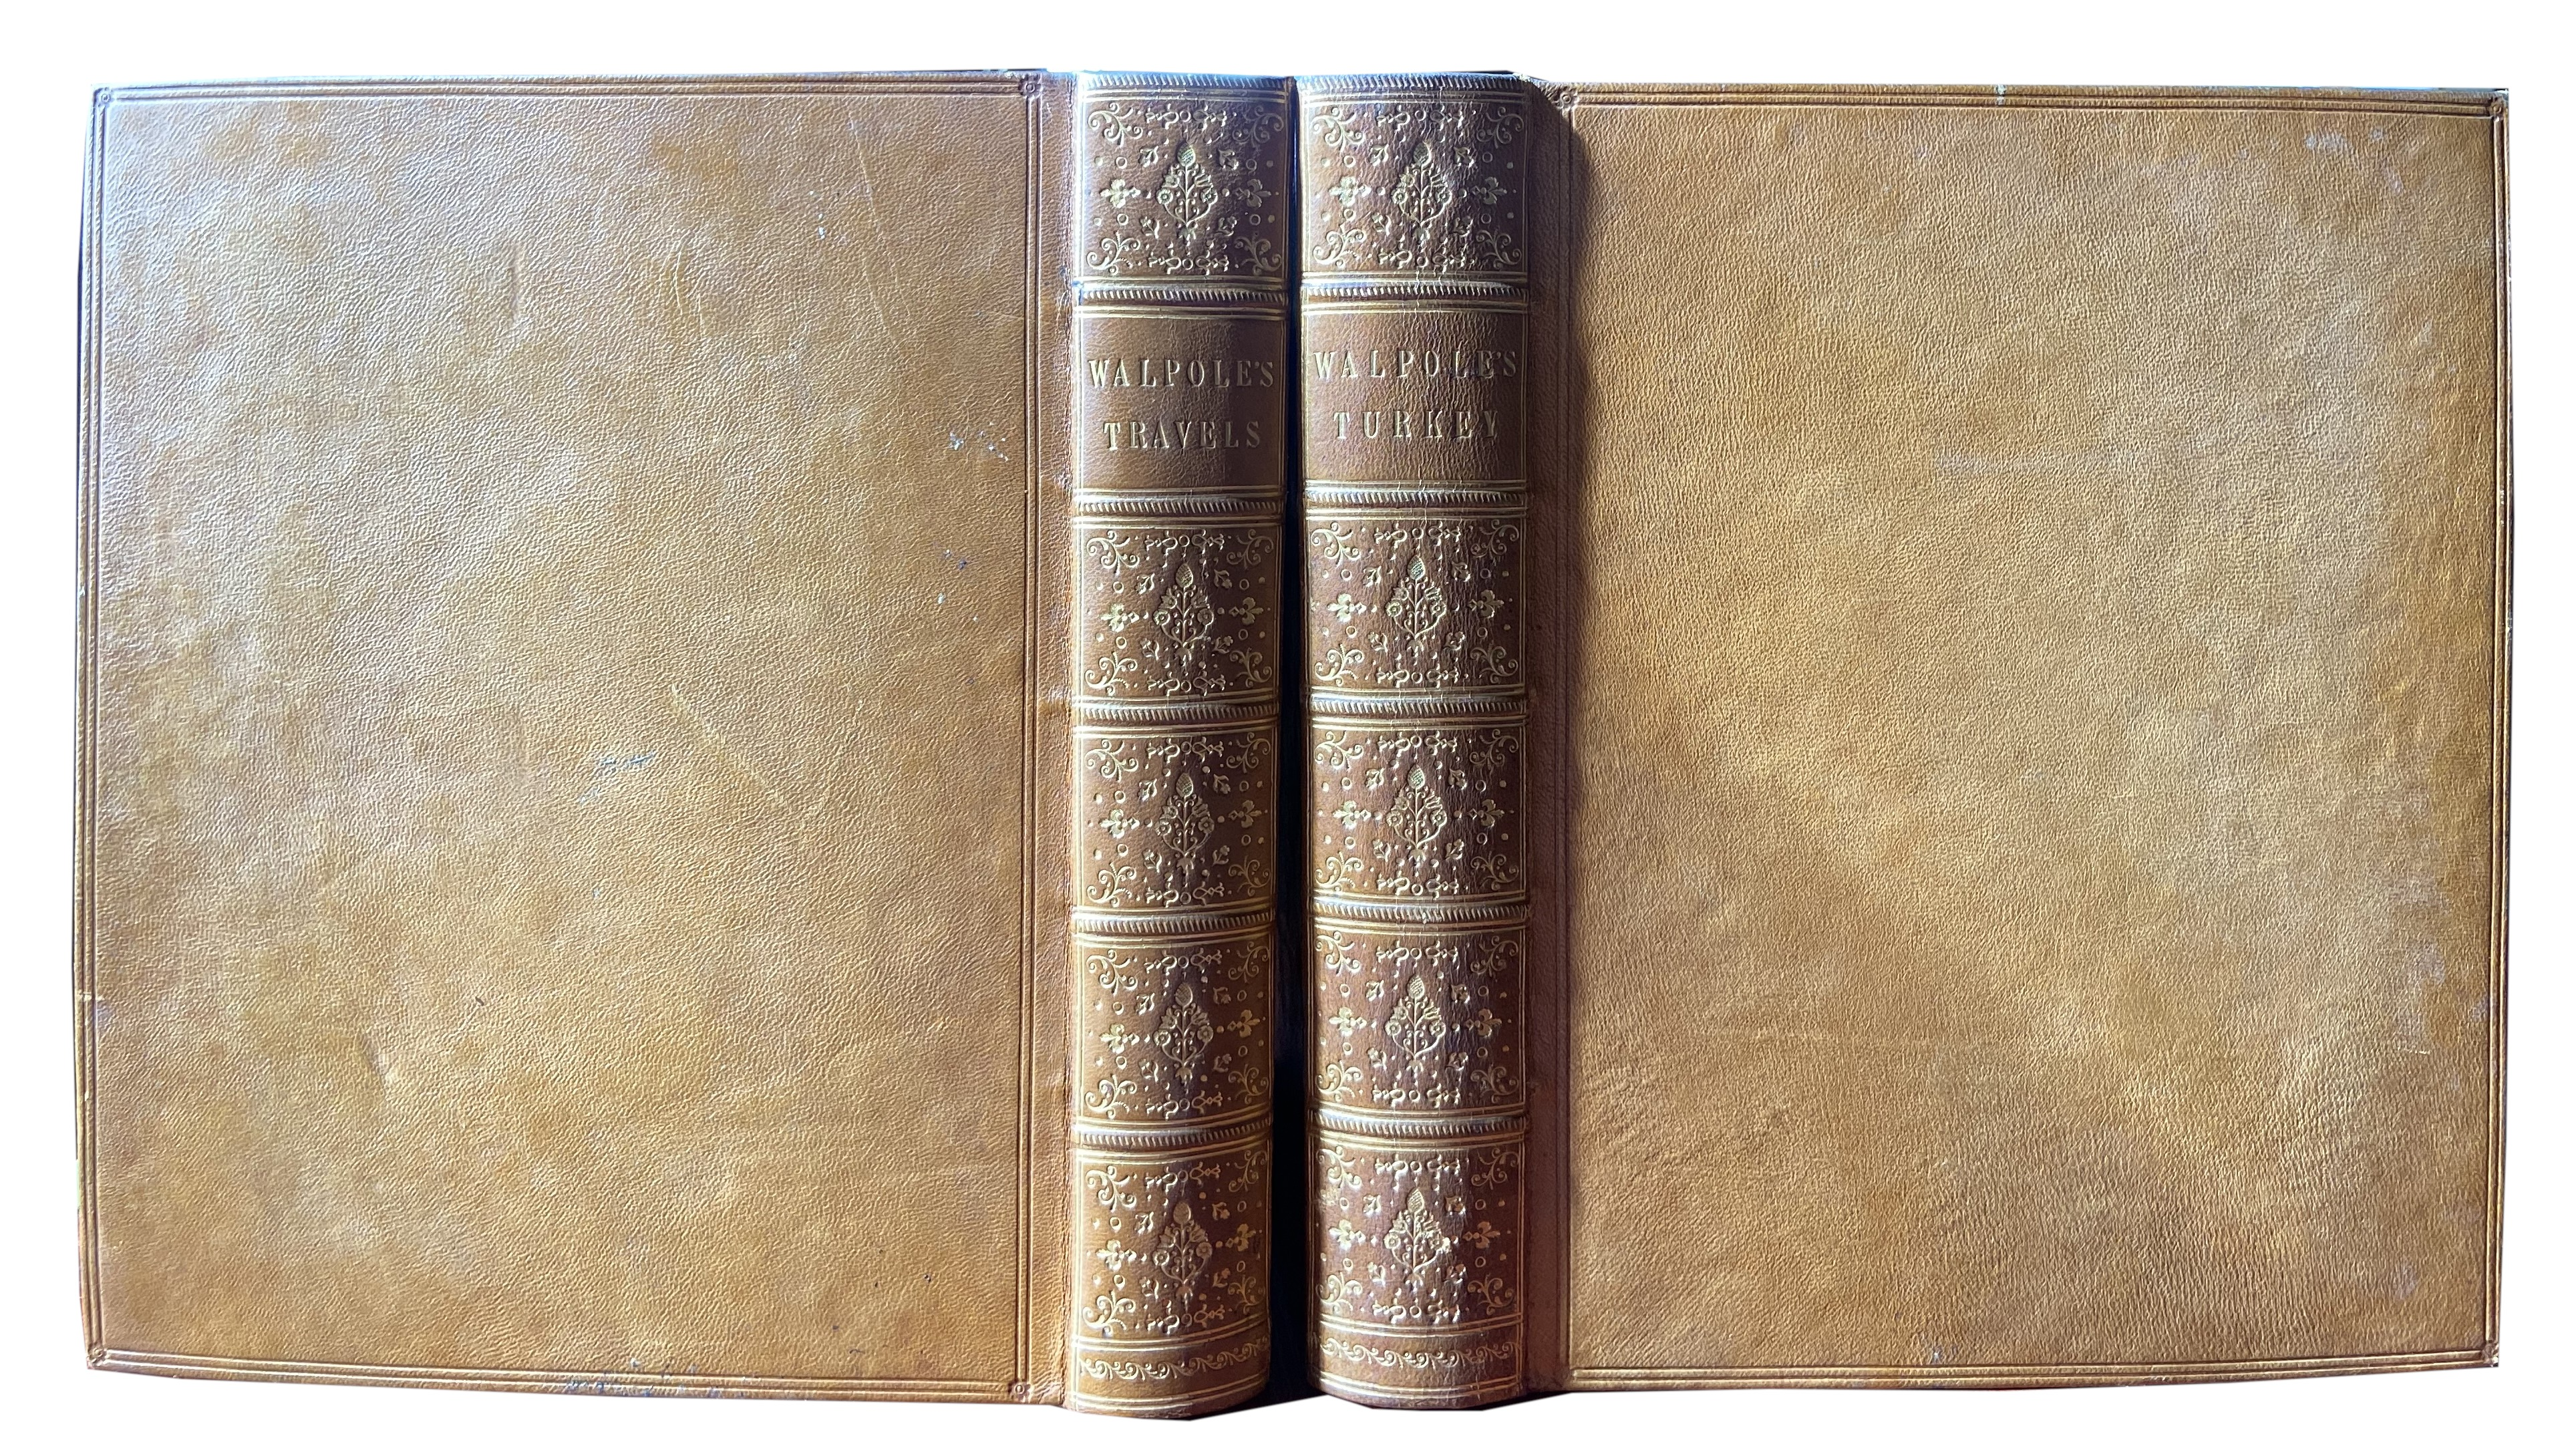 Walpole (Robert)ÿMemoirs Relating to European and Asiatic Turkey, lg. 4to Lond. 1817. Vignette